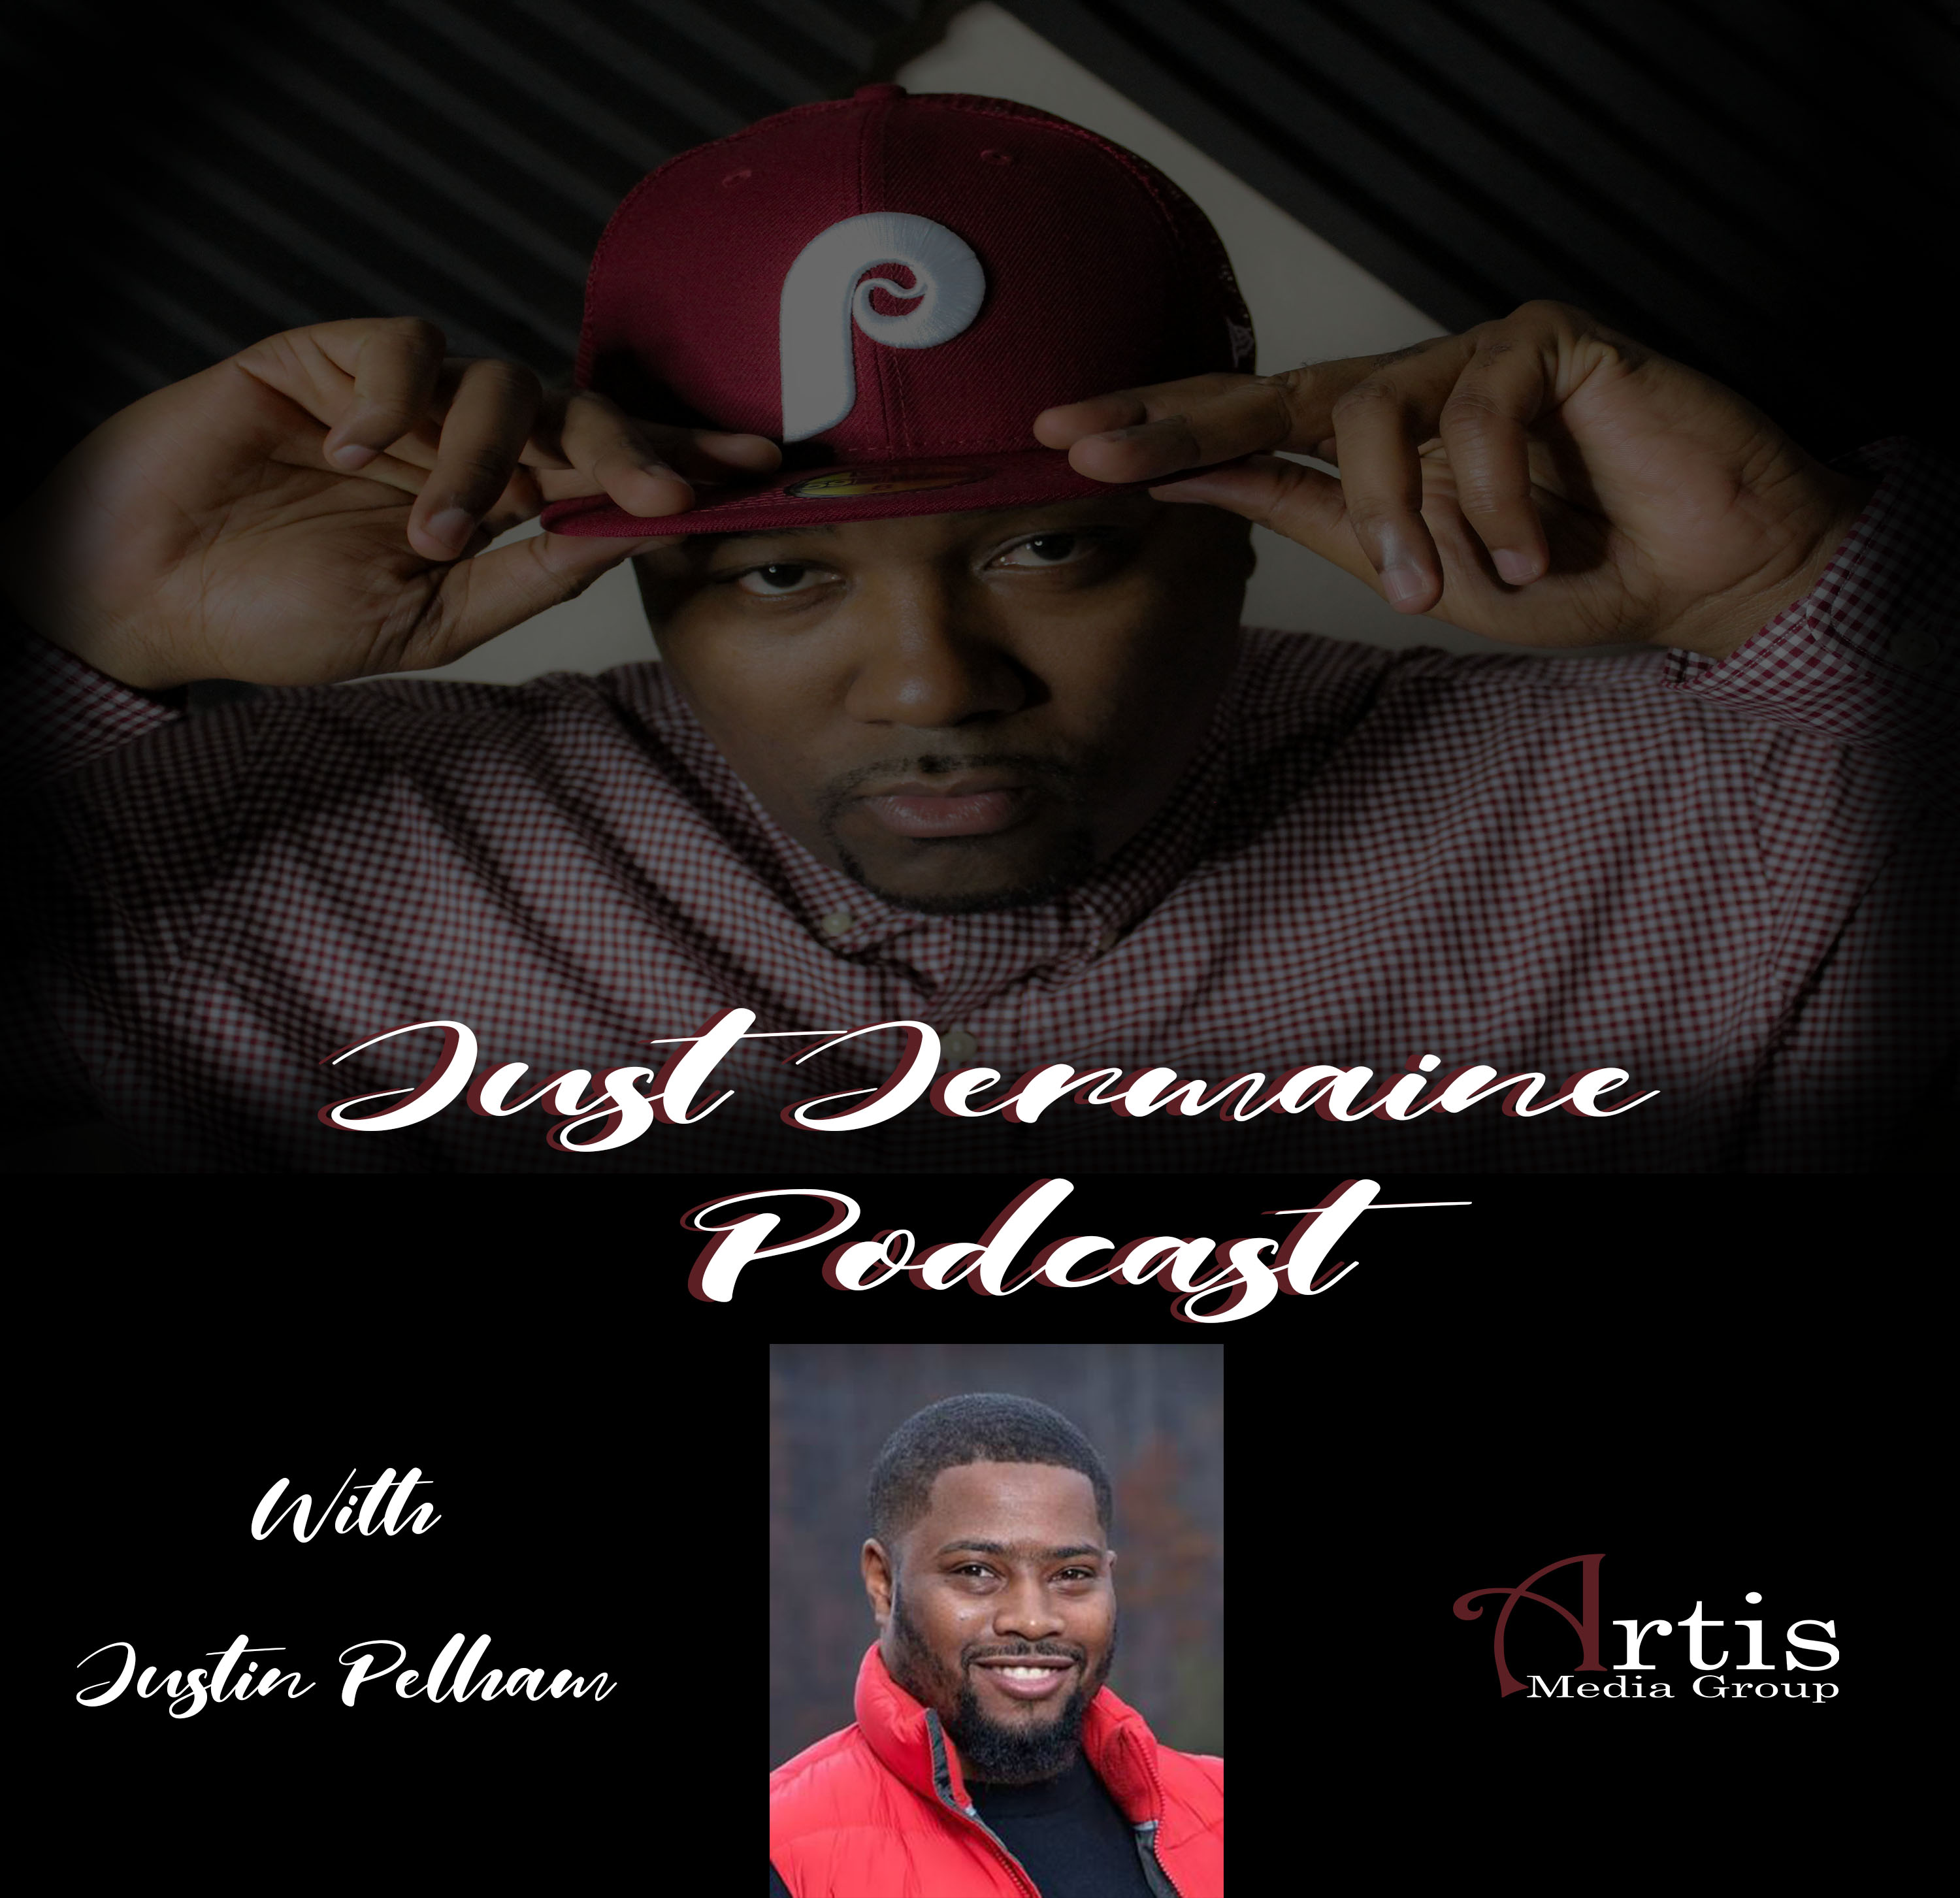 Just Jermaine Podcast Ep. 8 With Justin Pelham